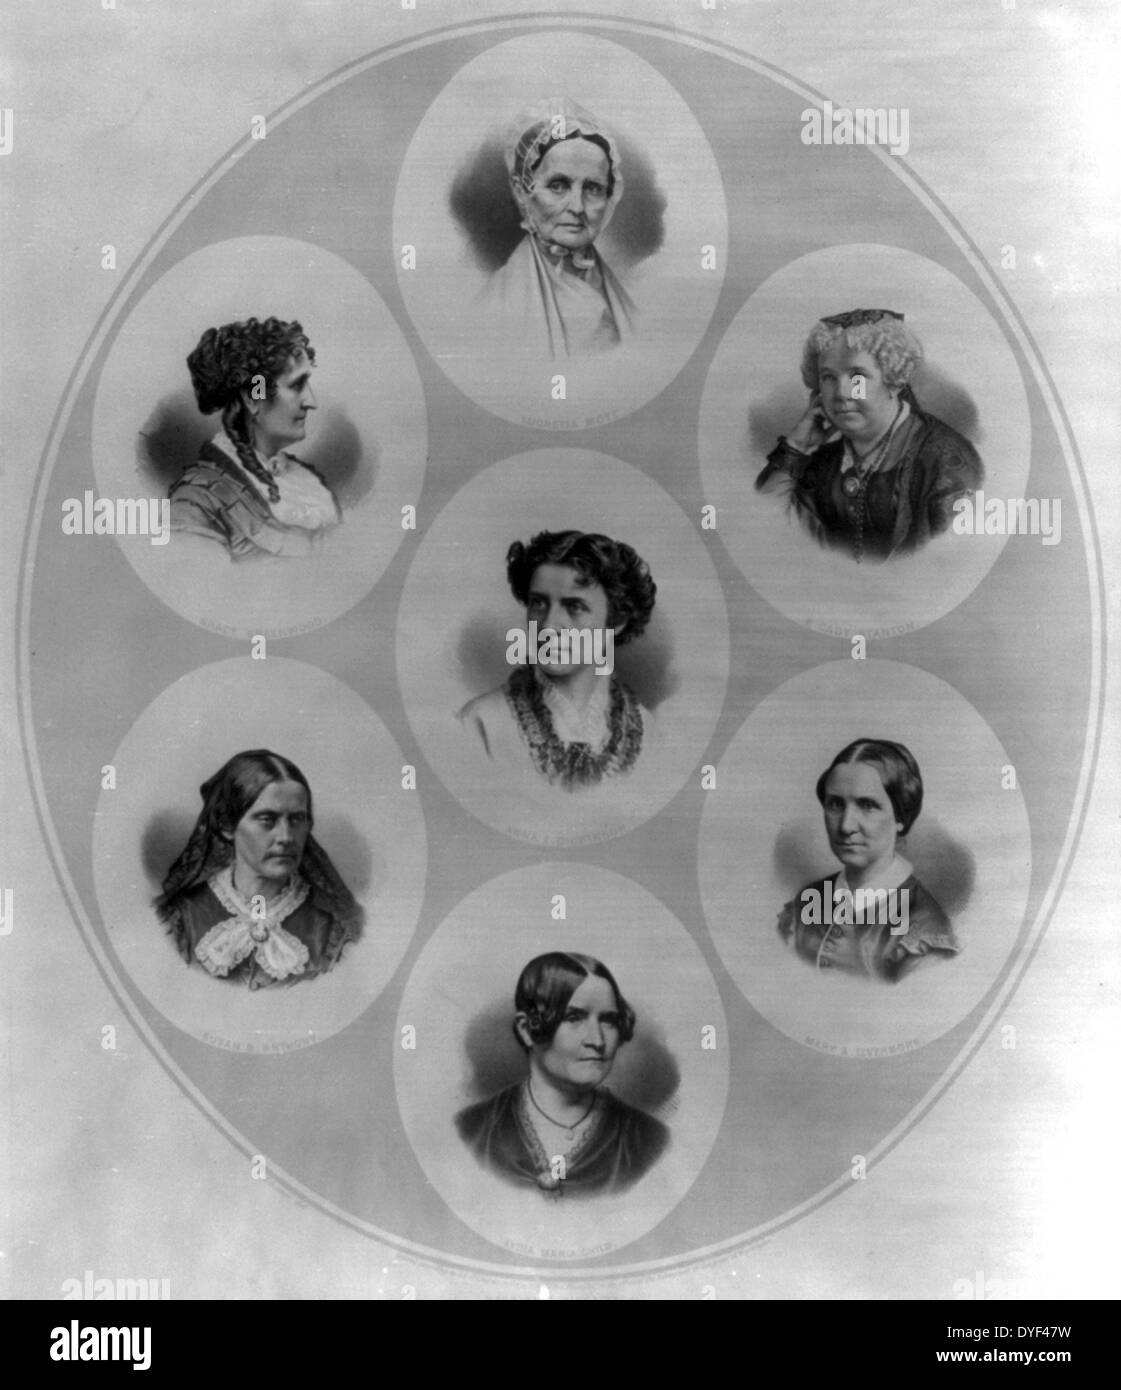 Head-and-shoulders portraits of seven prominent figures of the suffrage and women's rights movement. - Stock Image